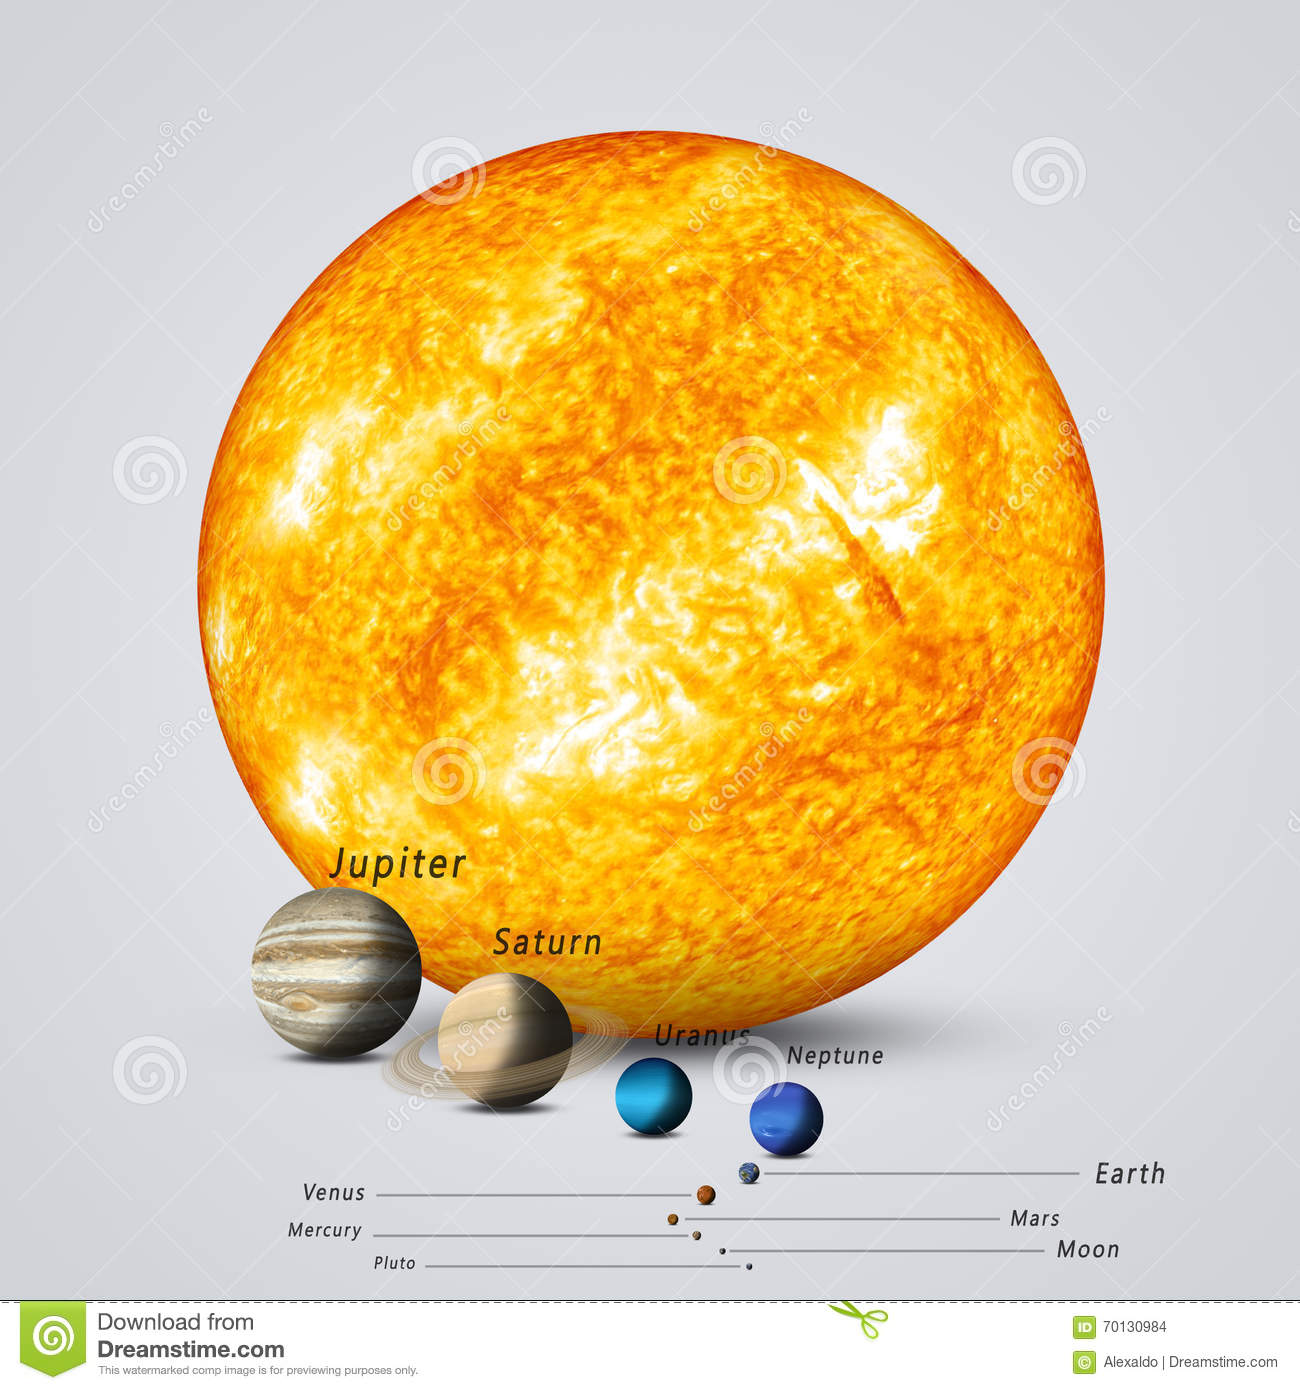 comparison of the planets How big is the earth compared to other planets,solar facts and history quick facts, earth size, universe,size of planets, earth science compare the size of the earth.